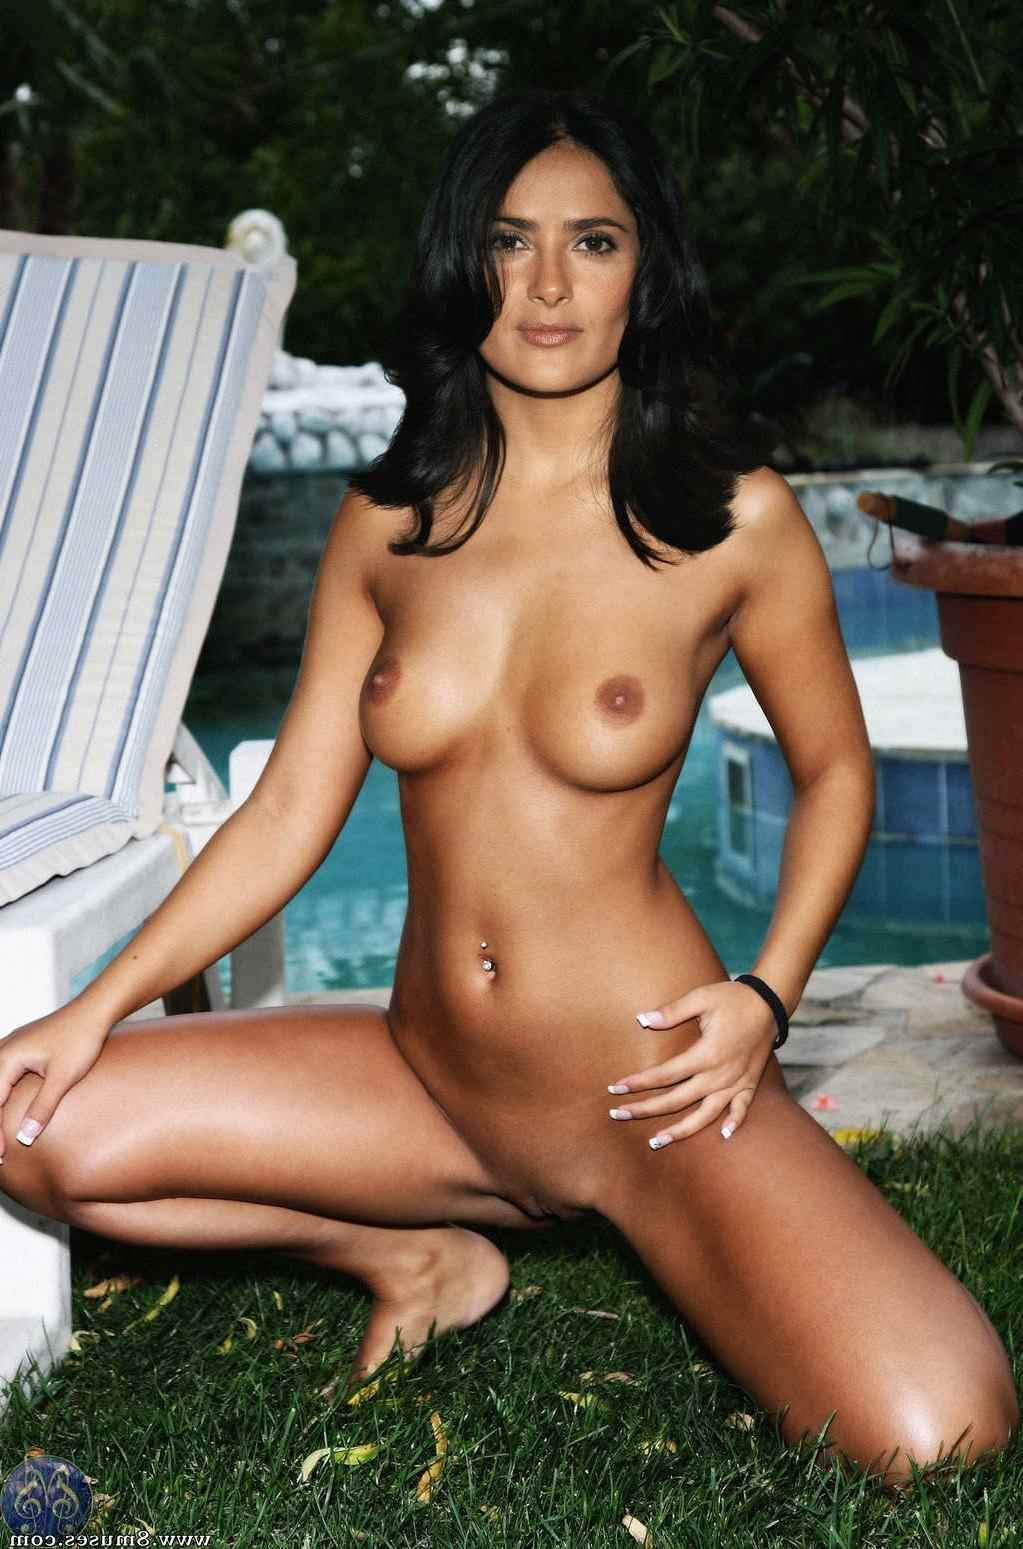 Fake-Celebrities-Sex-Pictures/Salma-Hayek Salma_Hayek__8muses_-_Sex_and_Porn_Comics_65.jpg